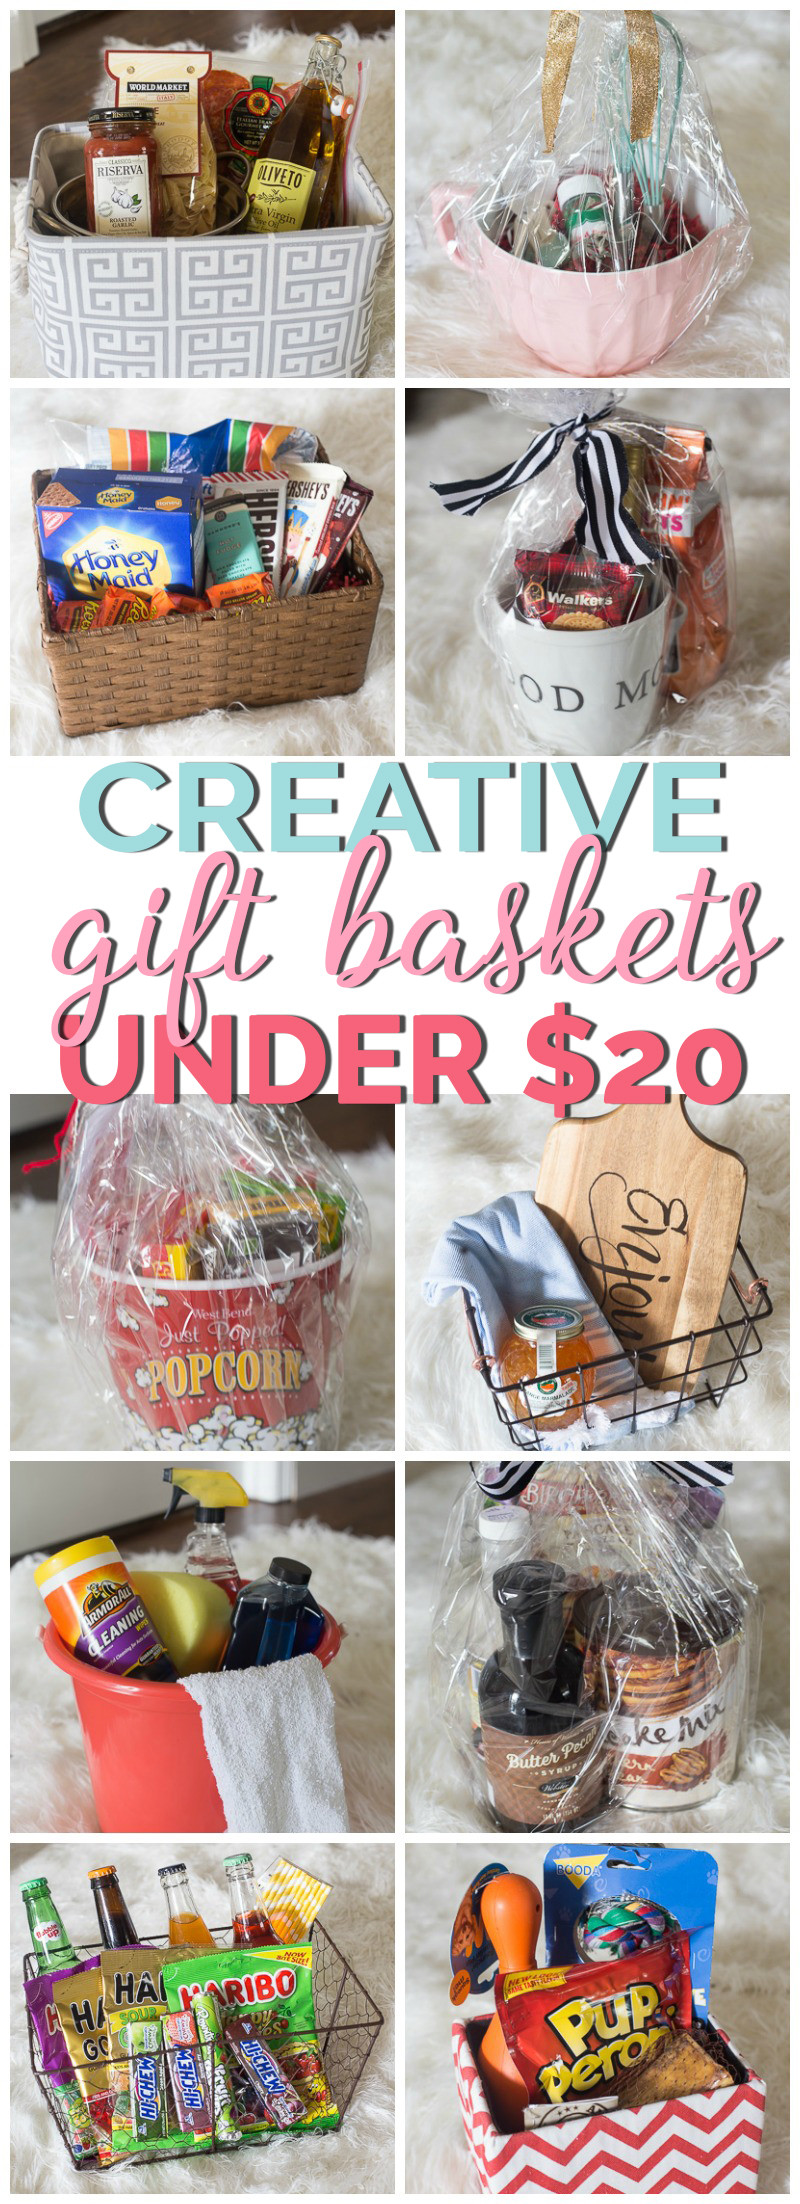 Best ideas about Creative Gift Basket Ideas . Save or Pin Creative Gift Basket Ideas Under $20 Now.